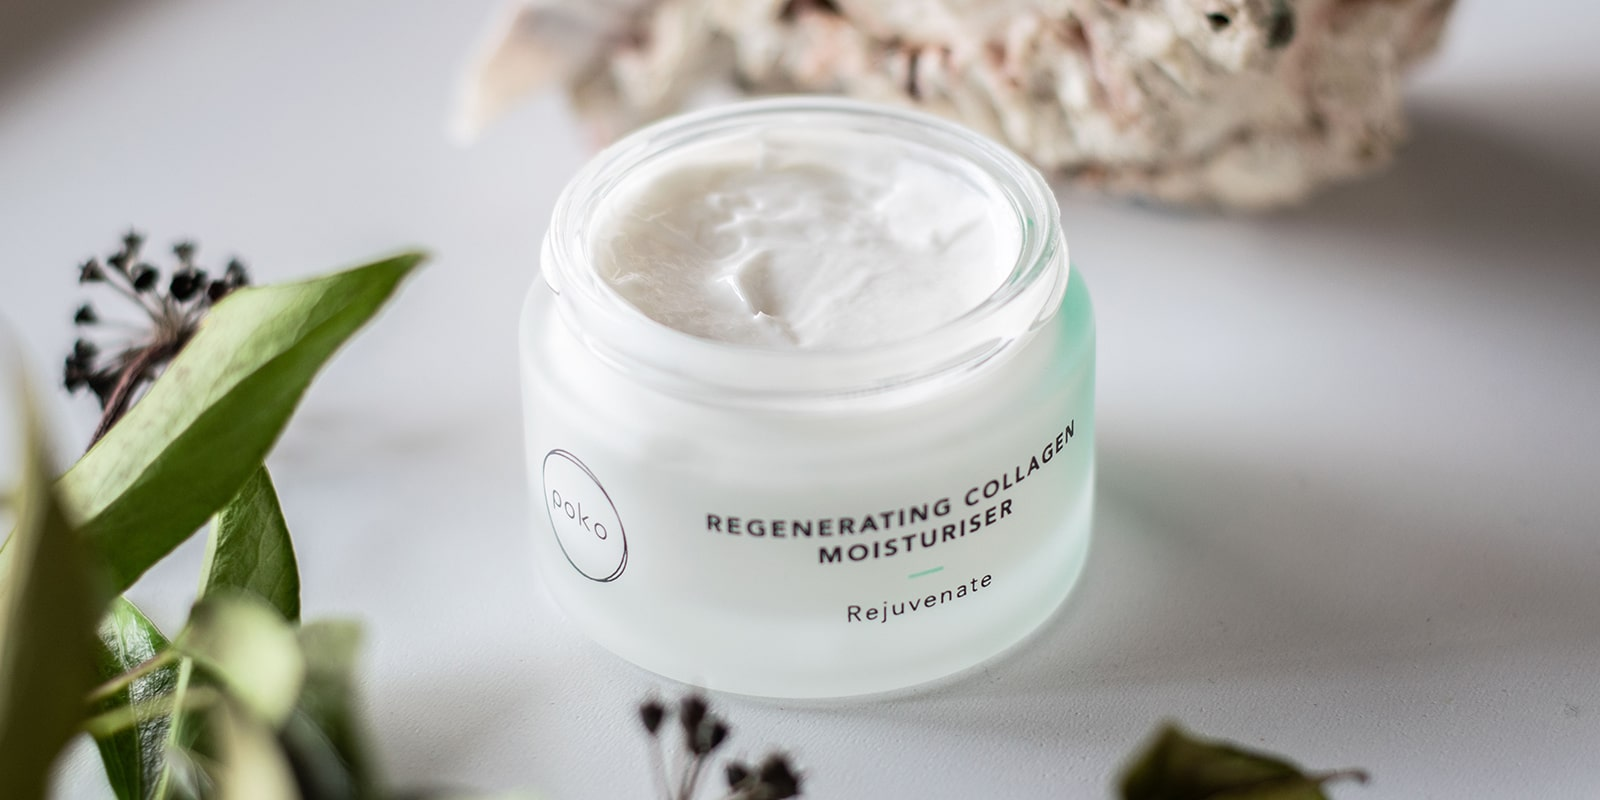 Poko-Regenerating-Collagen-Moisturiser